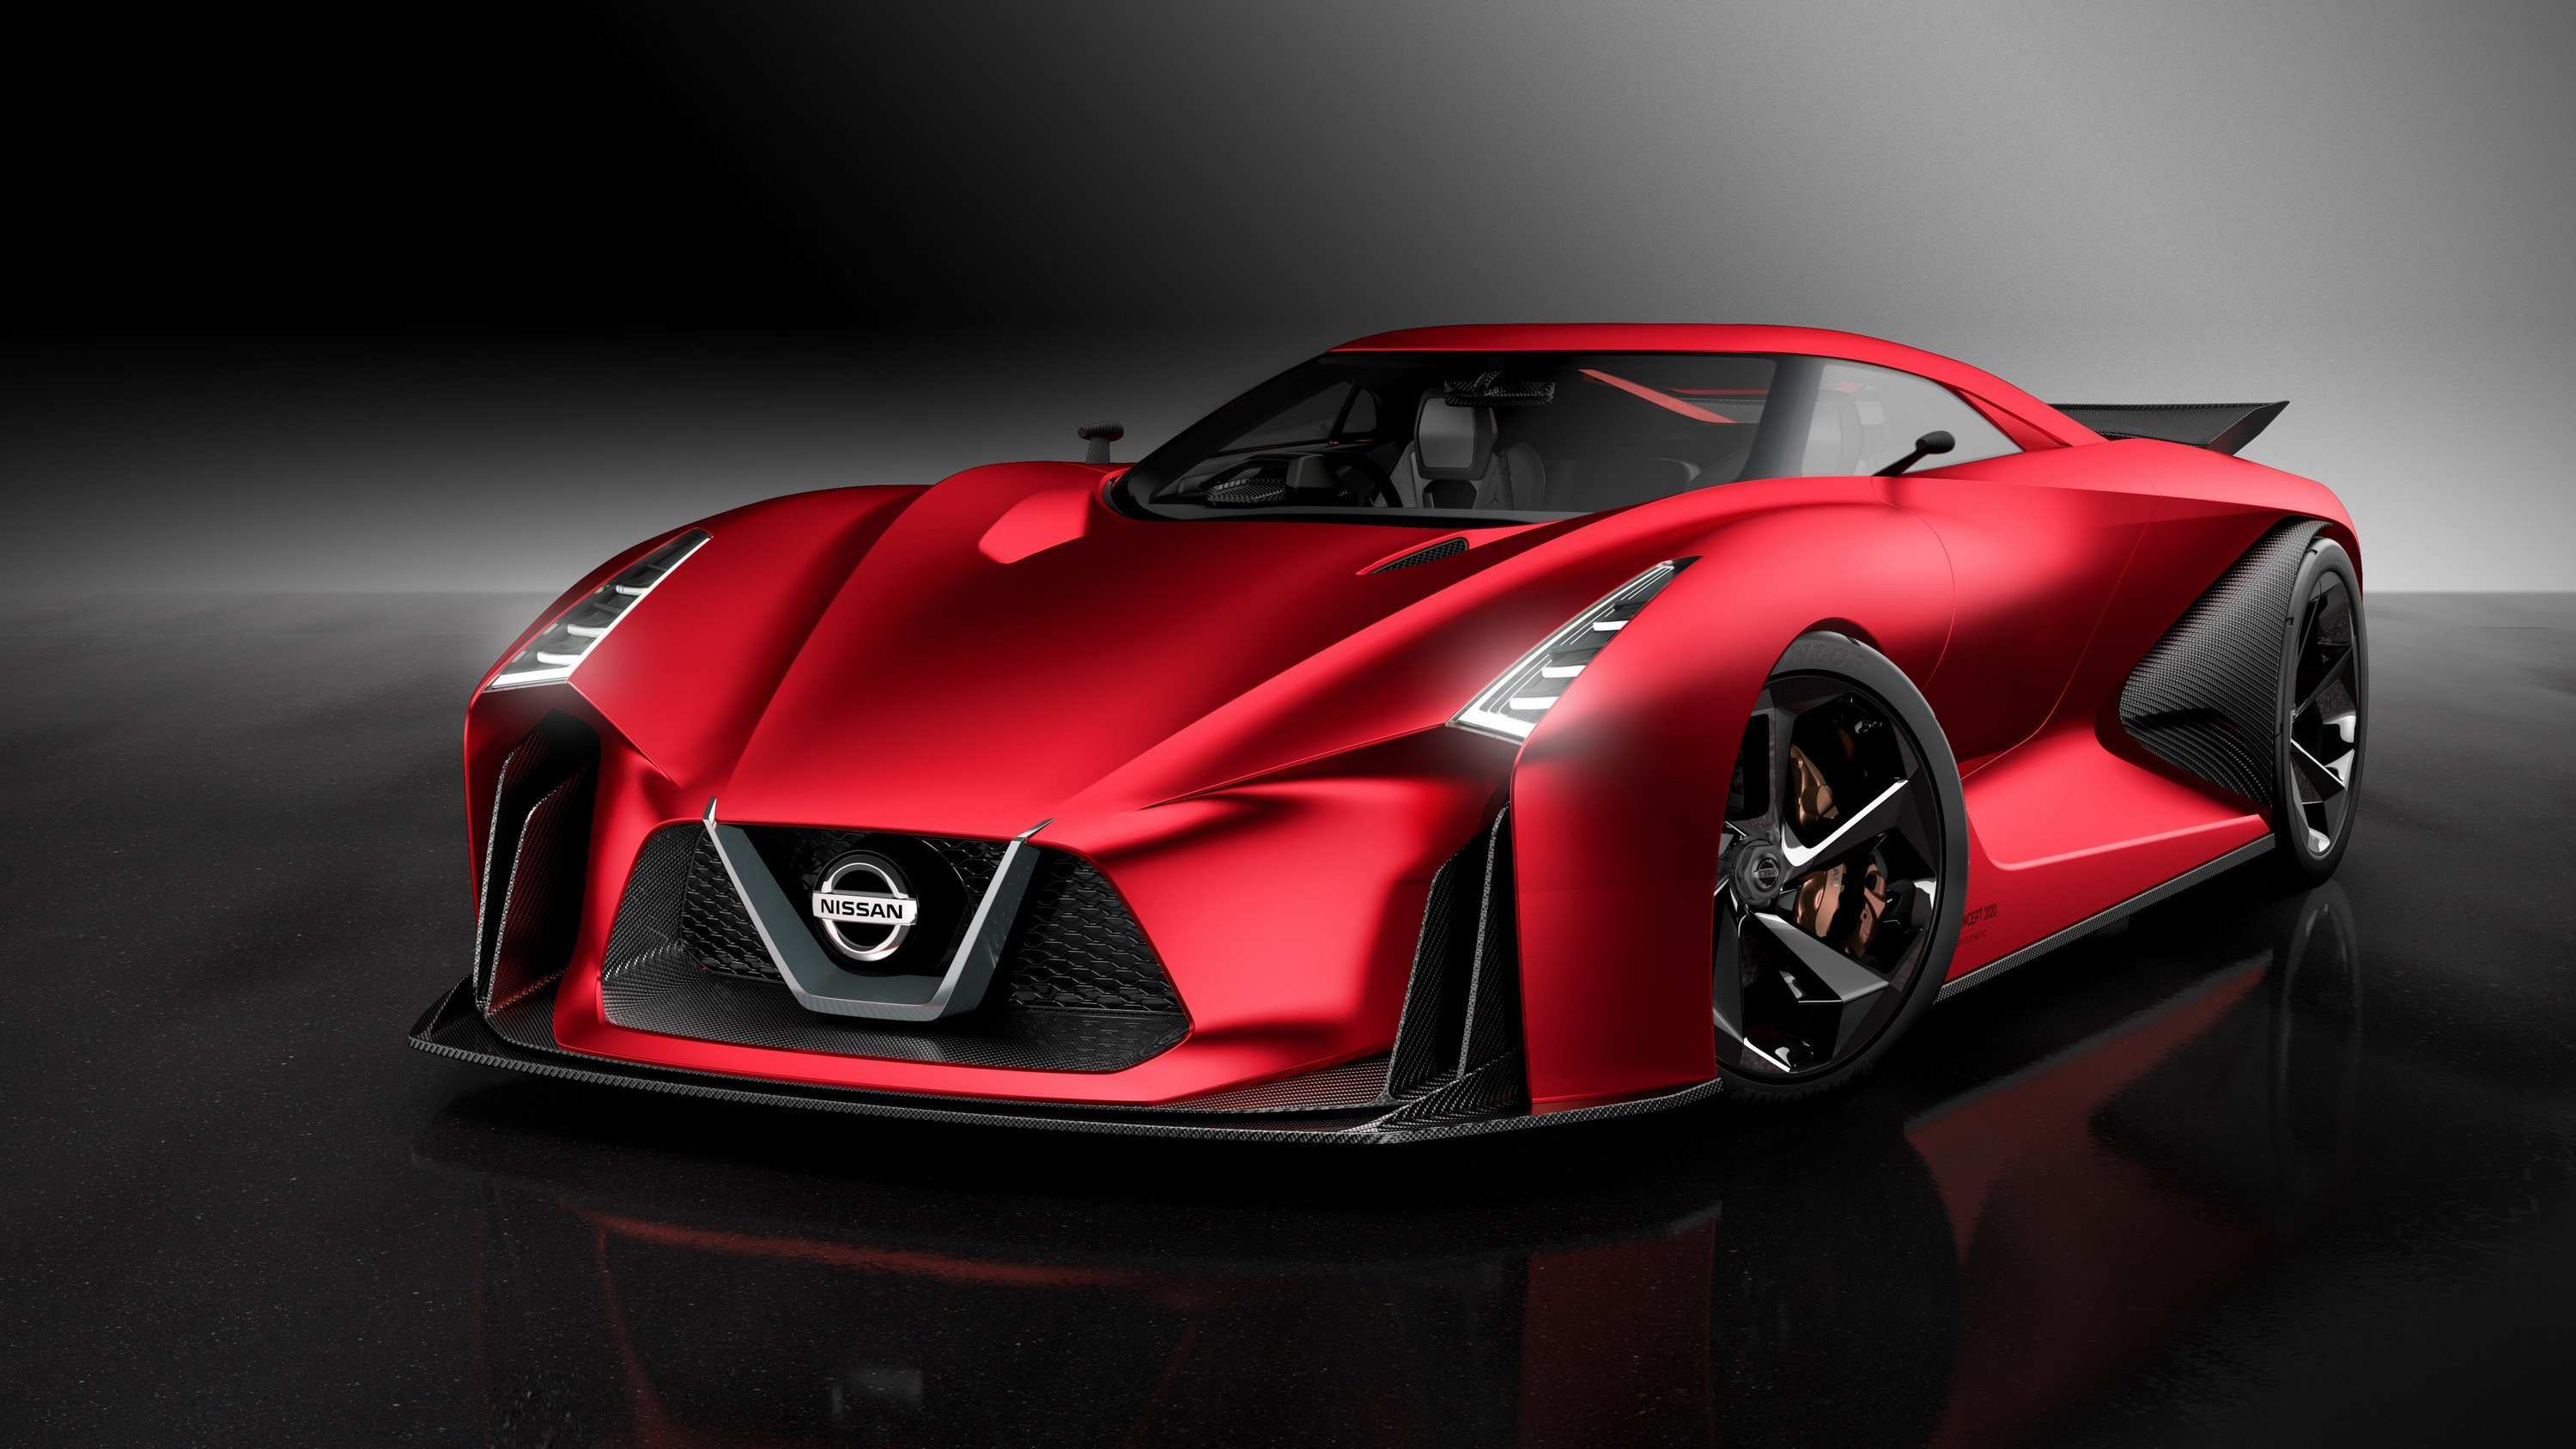 42 Best Review Nissan Gtr 2020 Top Speed Specs and Review with Nissan Gtr 2020 Top Speed